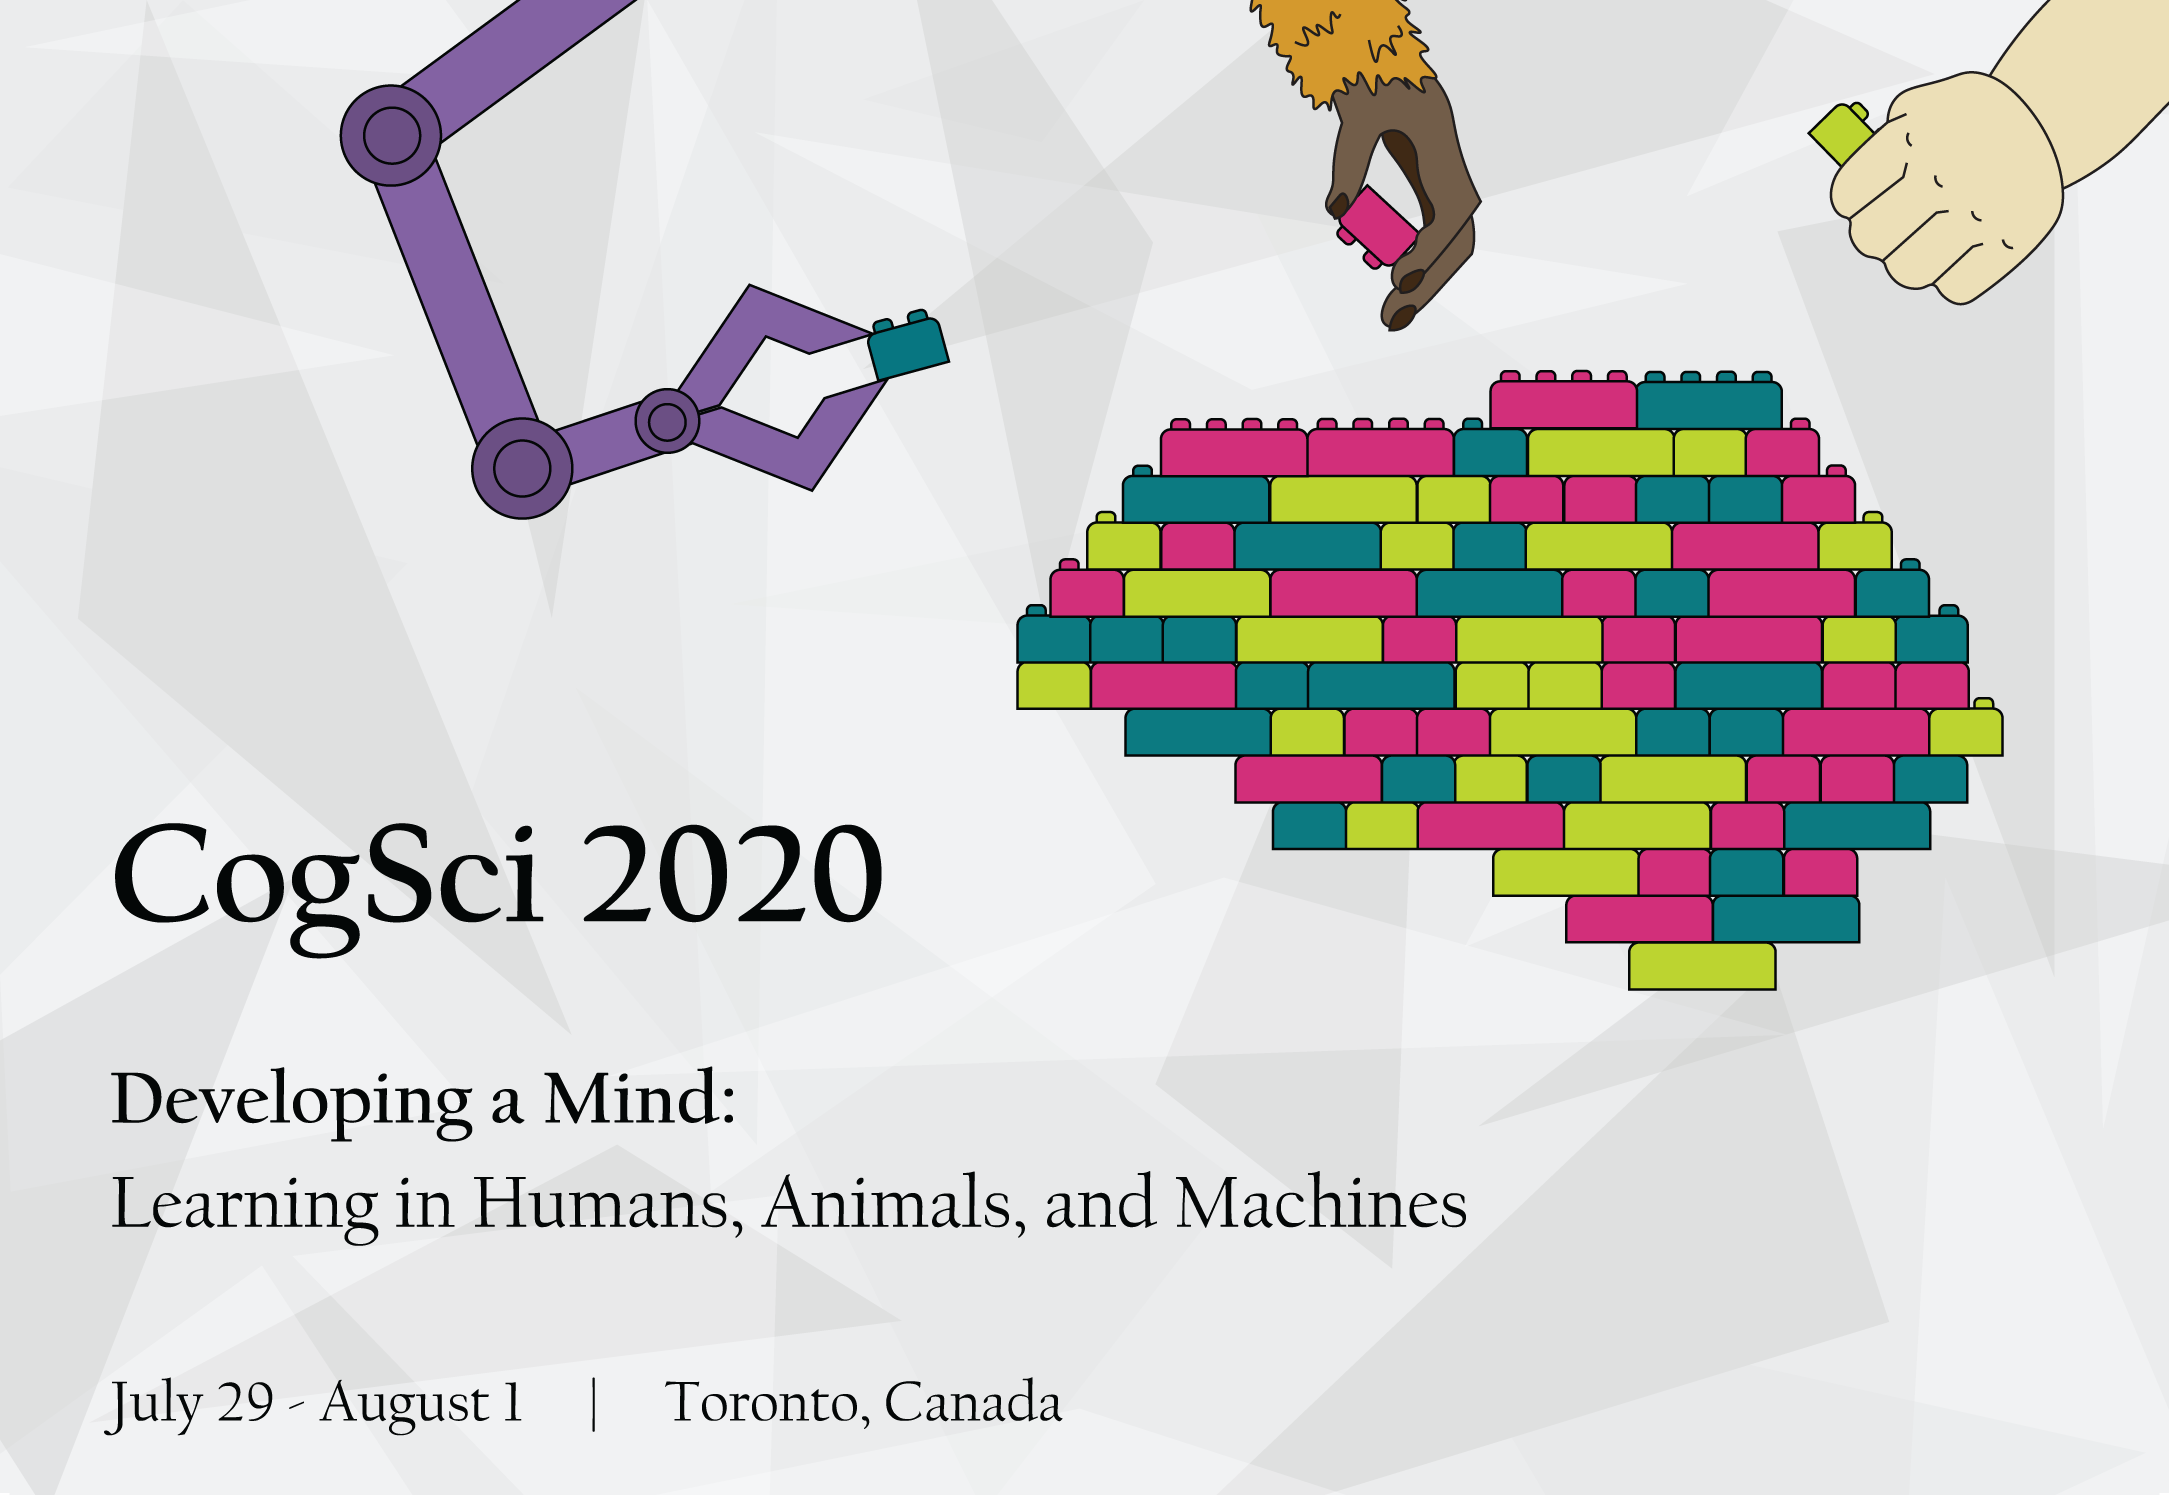 42nd Annual Meeting of the Cognitive Science Society